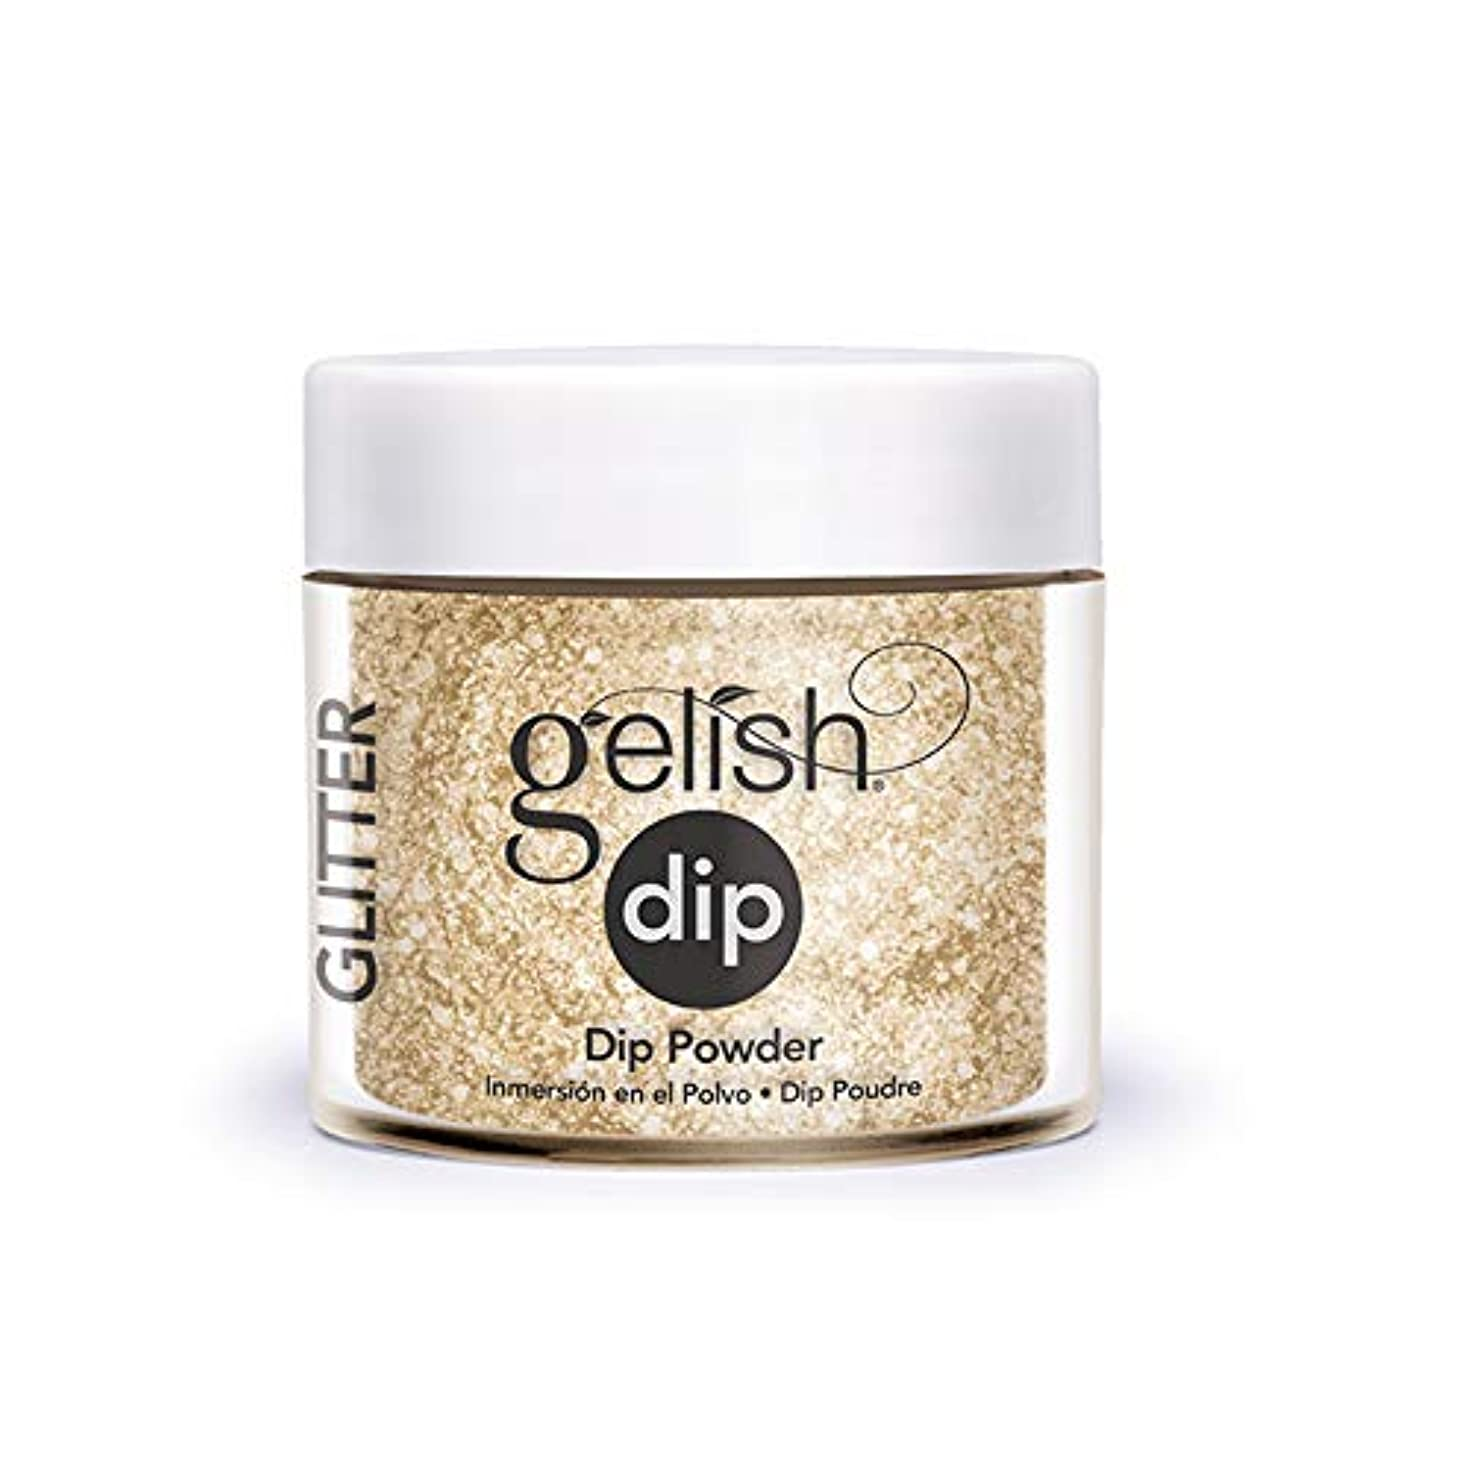 本当のことを言うとチェリー仕出しますHarmony Gelish - Acrylic Dip Powder - All that Glitters is Gold - 23g / 0.8oz